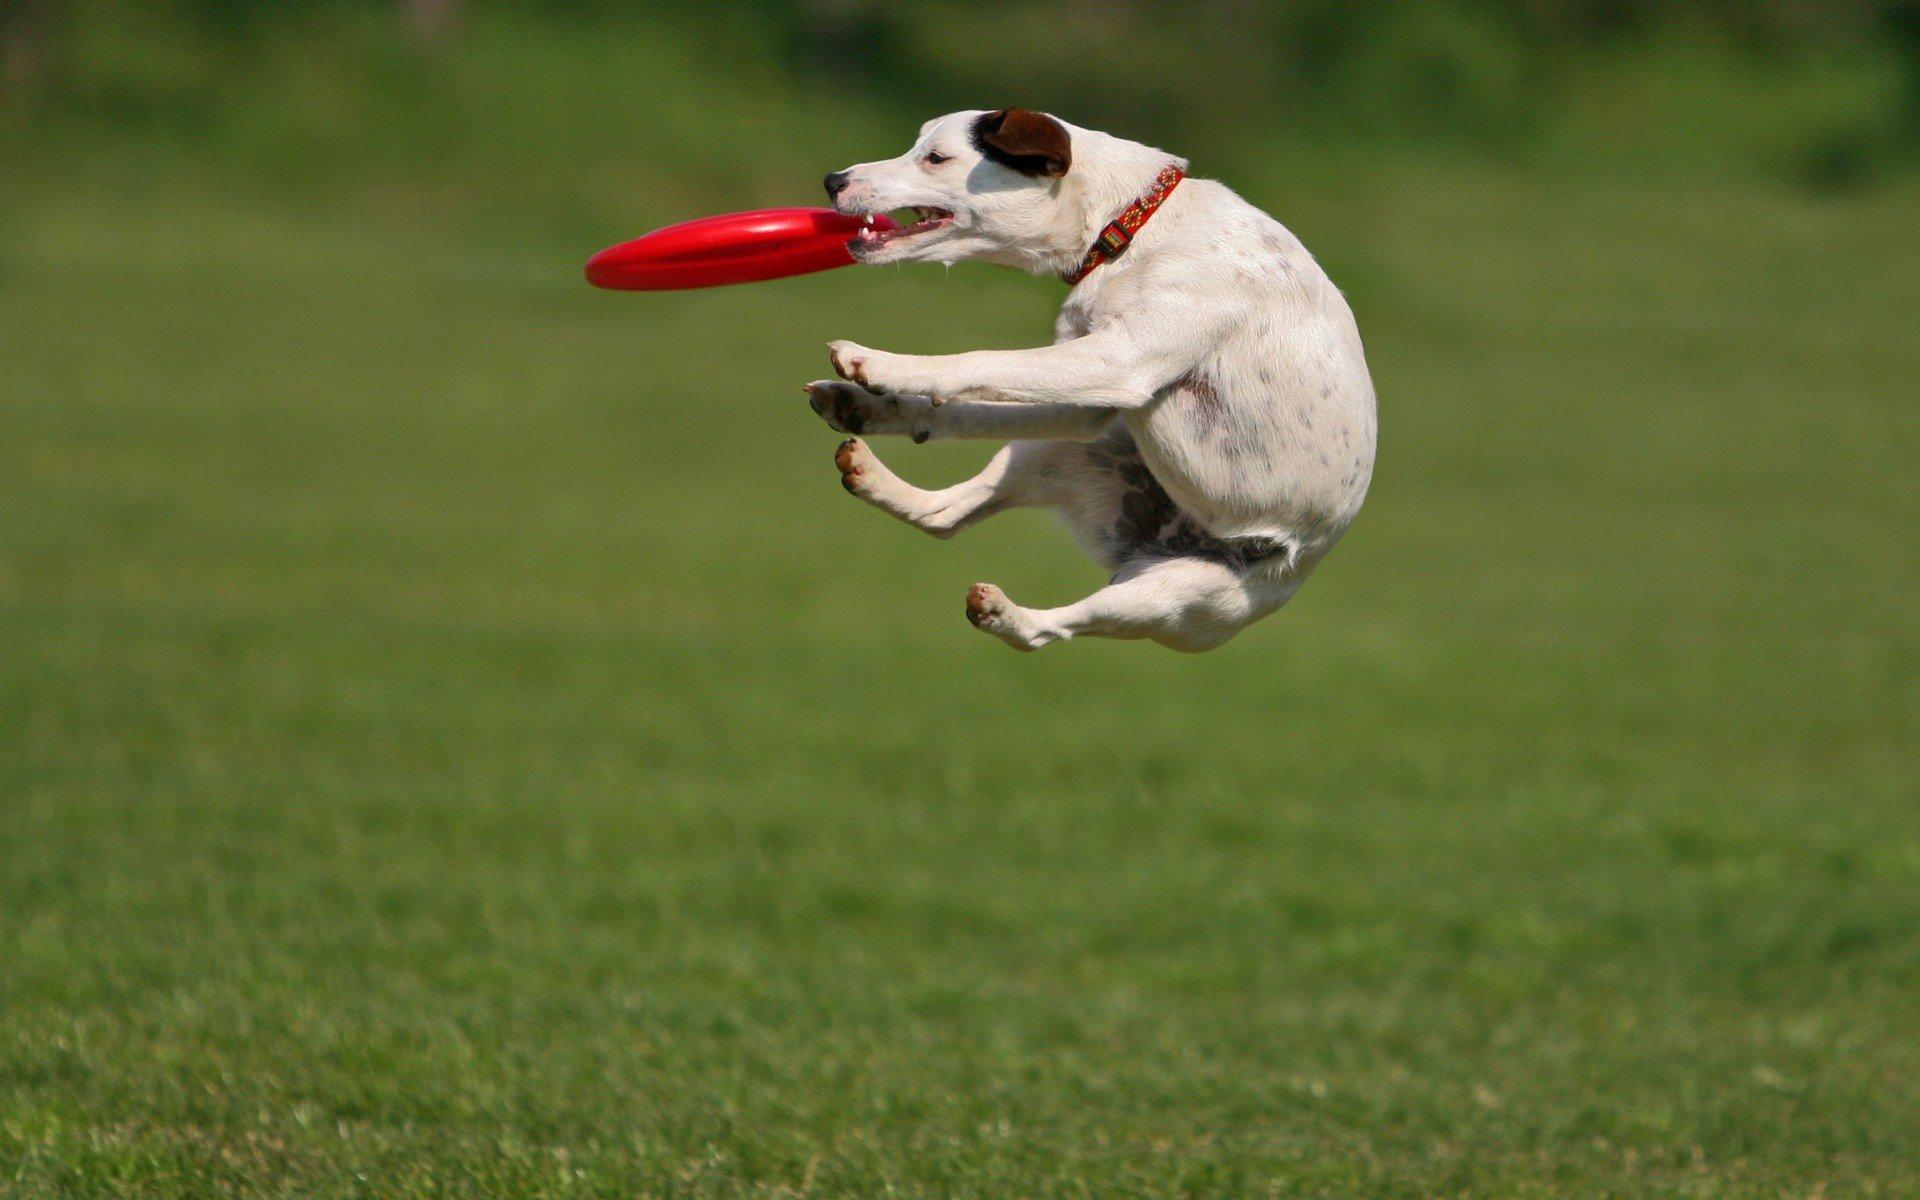 animals, Grass, Dogs, Frisbee Wallpapers HD / Desktop and Mobile